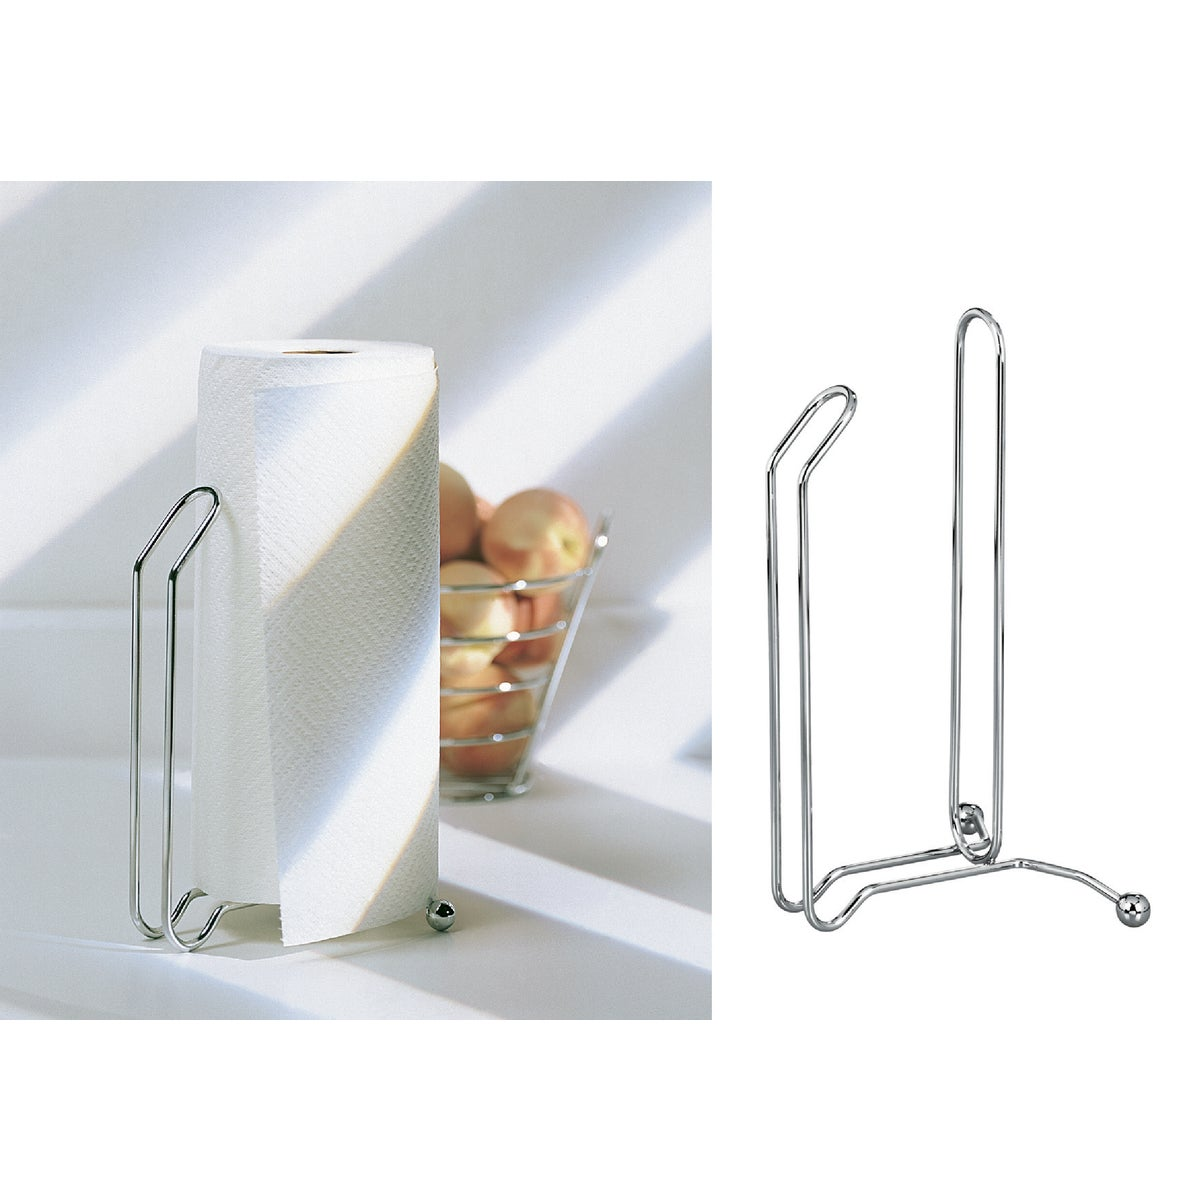 CHR ST PAPR TOWEL HOLDER